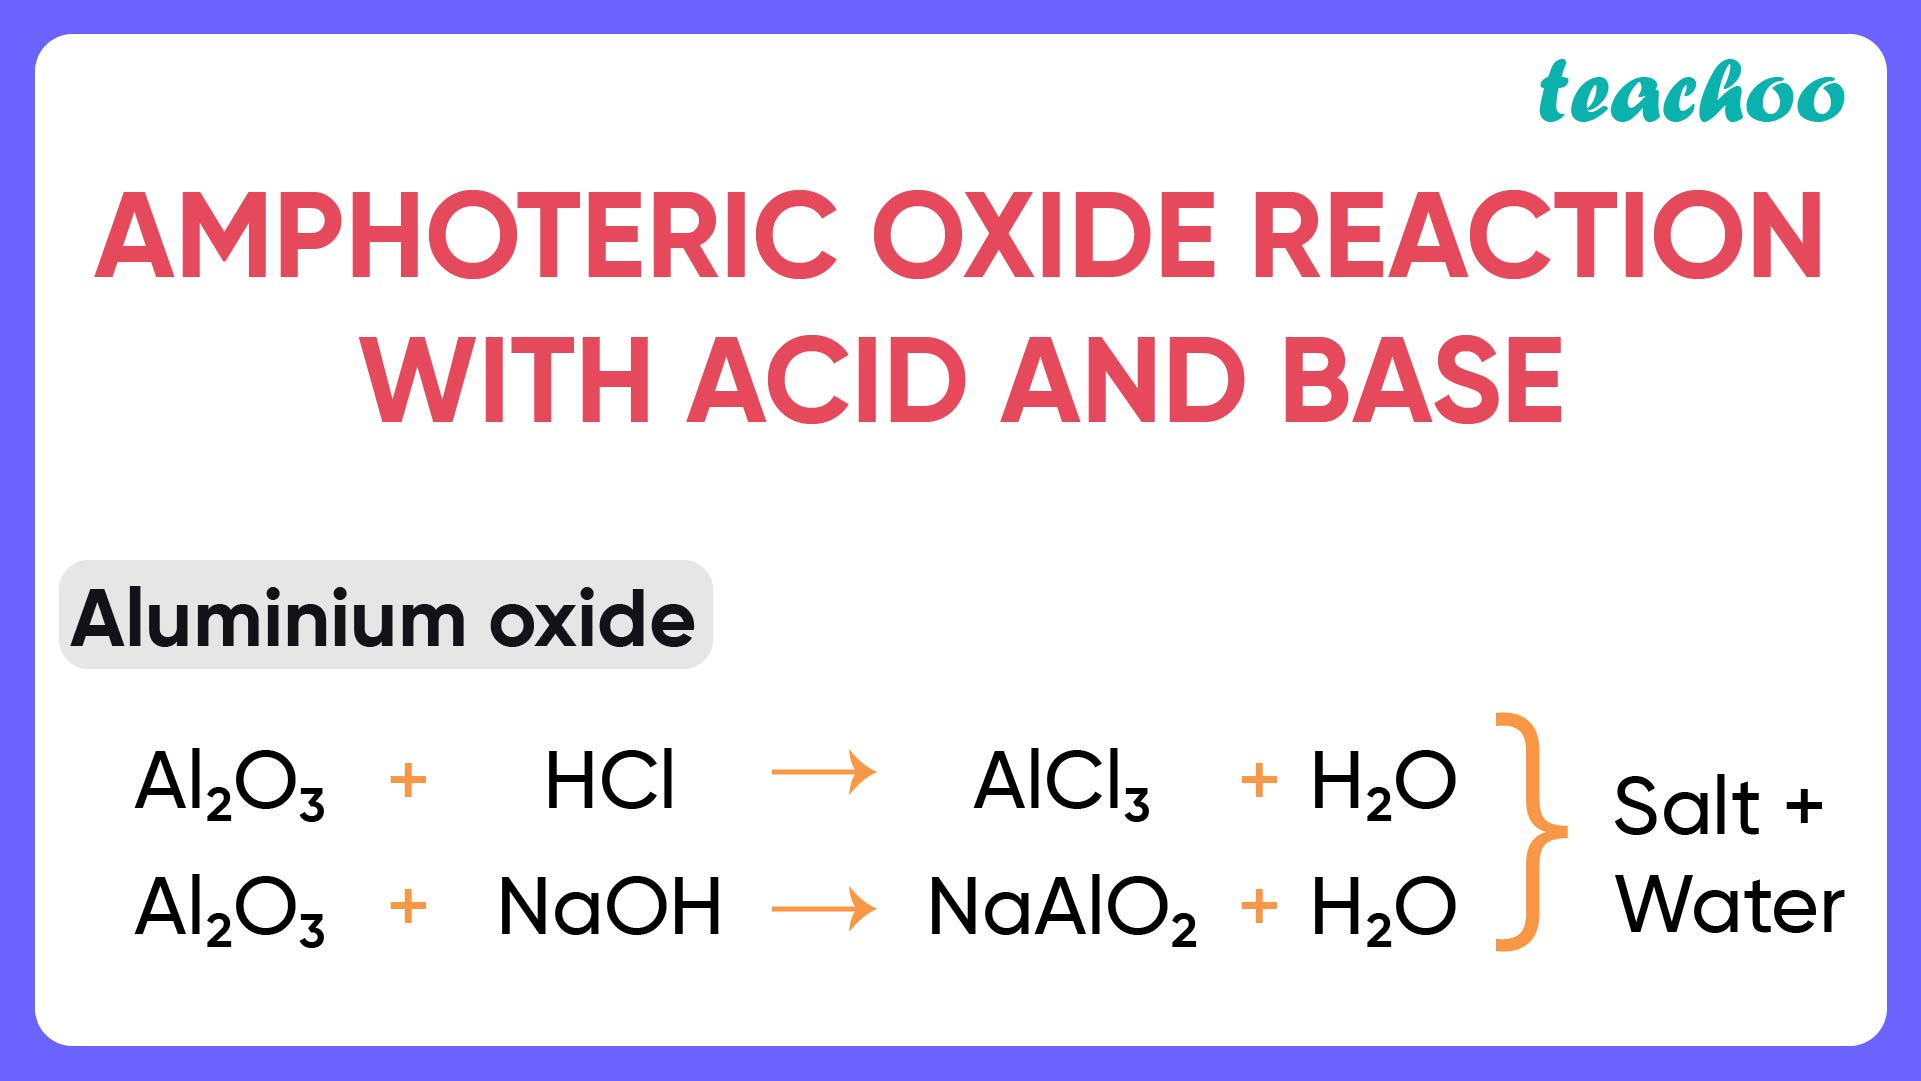 Amphoteric oxide reaction with Acid  and Base-01.jpg